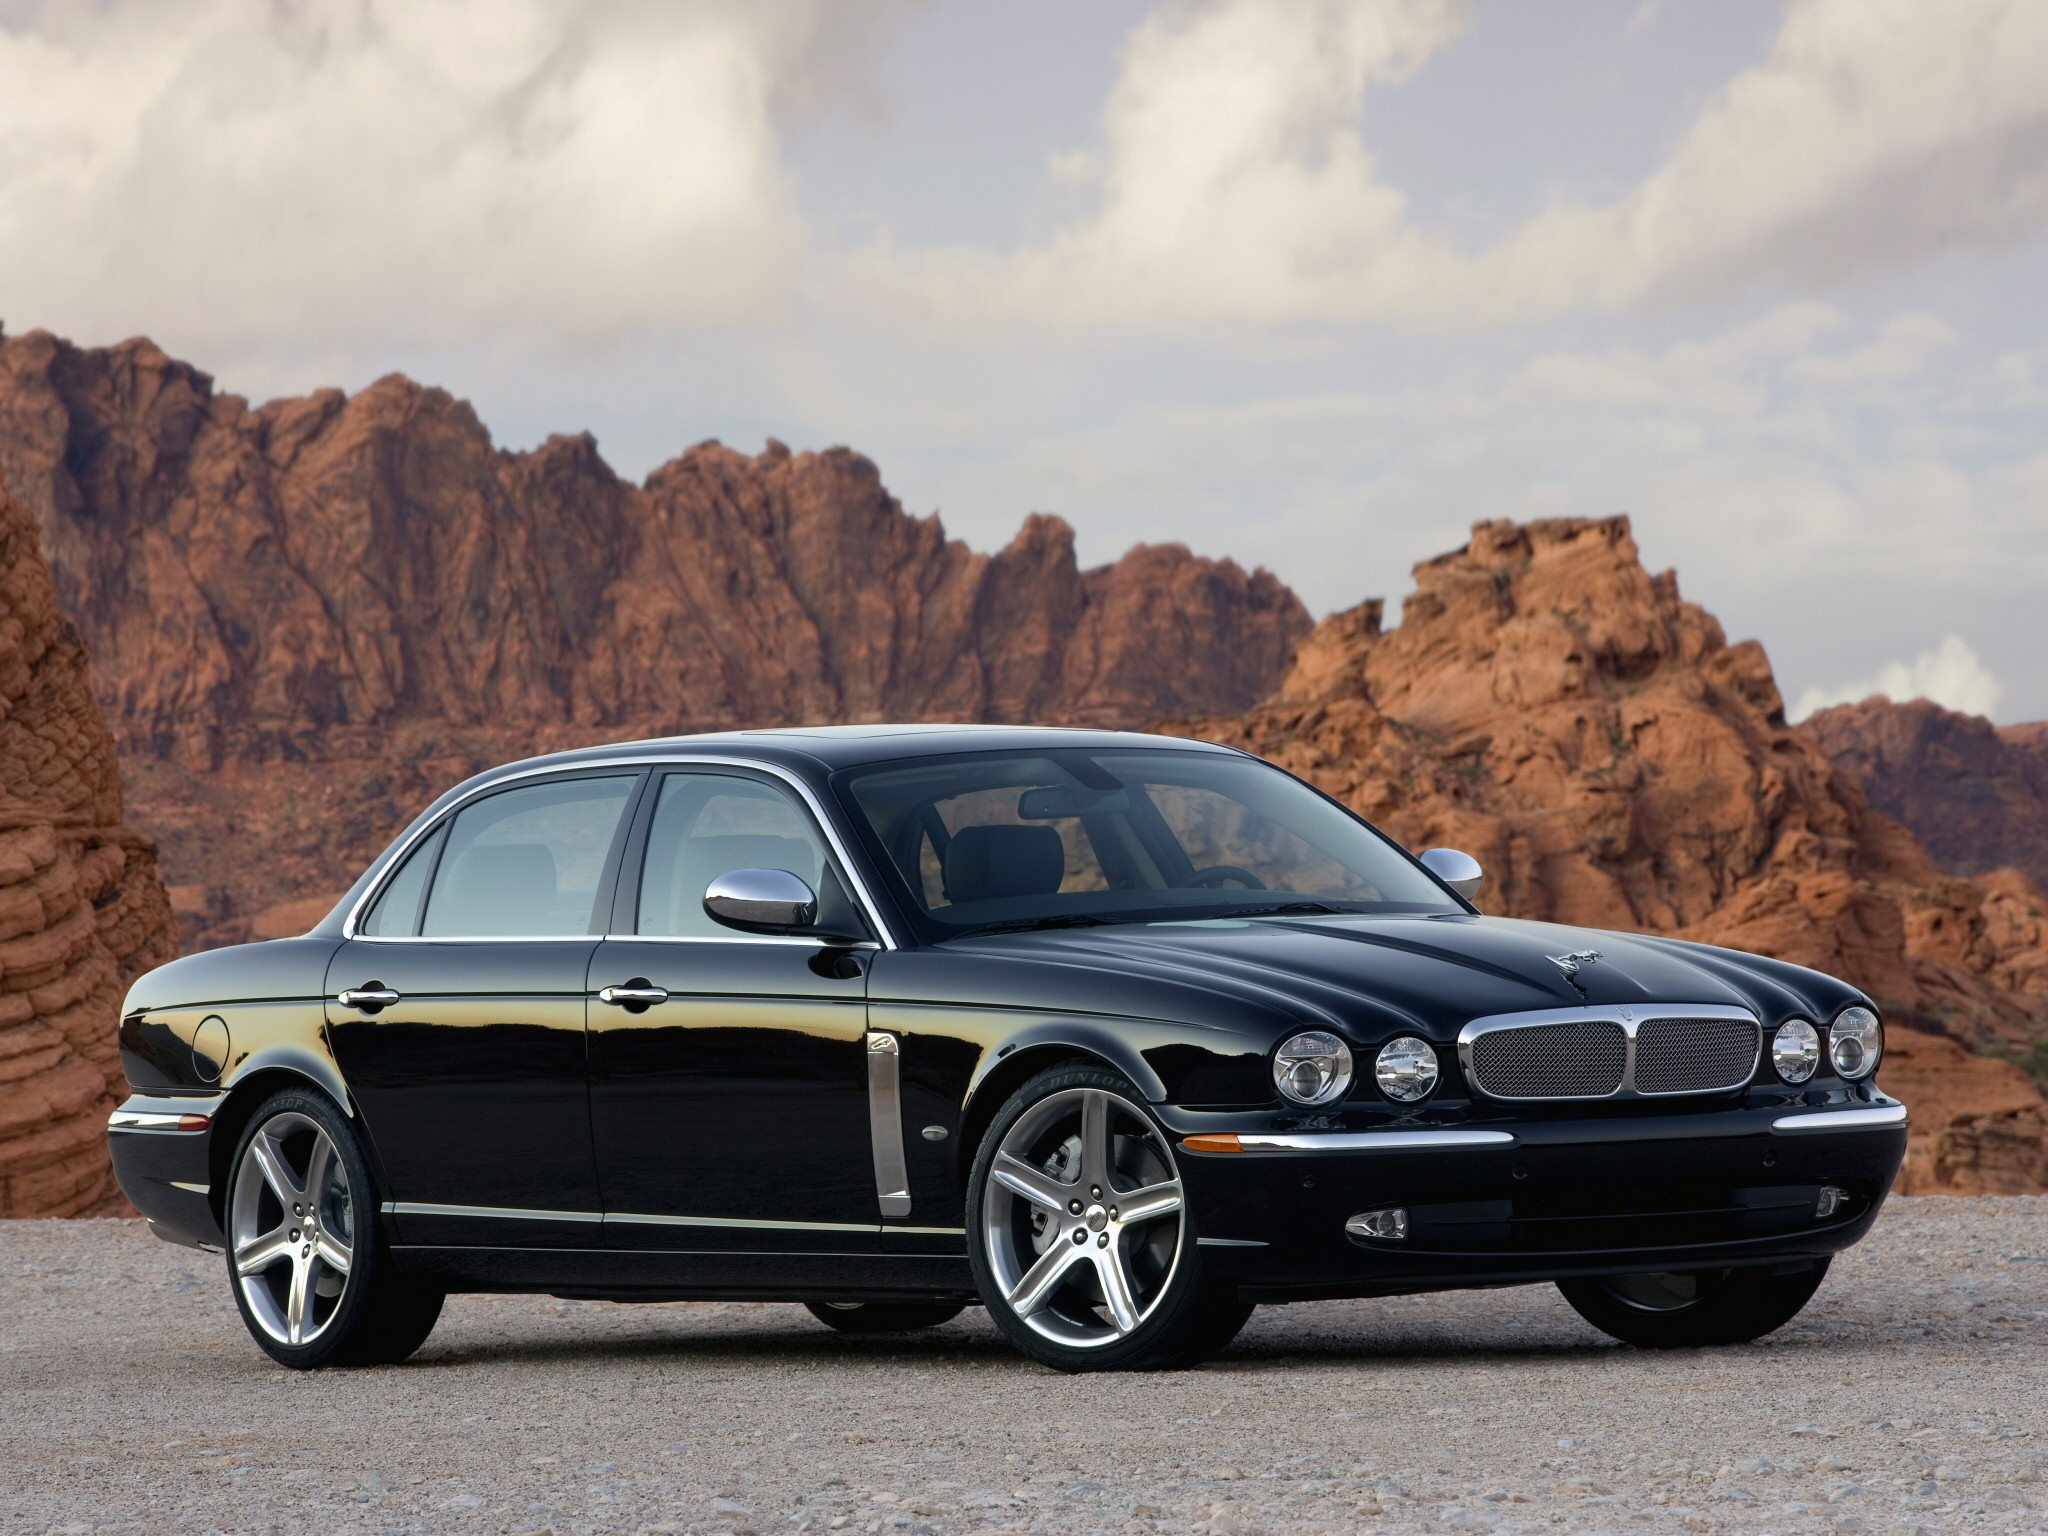 2006 Jaguar Xj-series #14